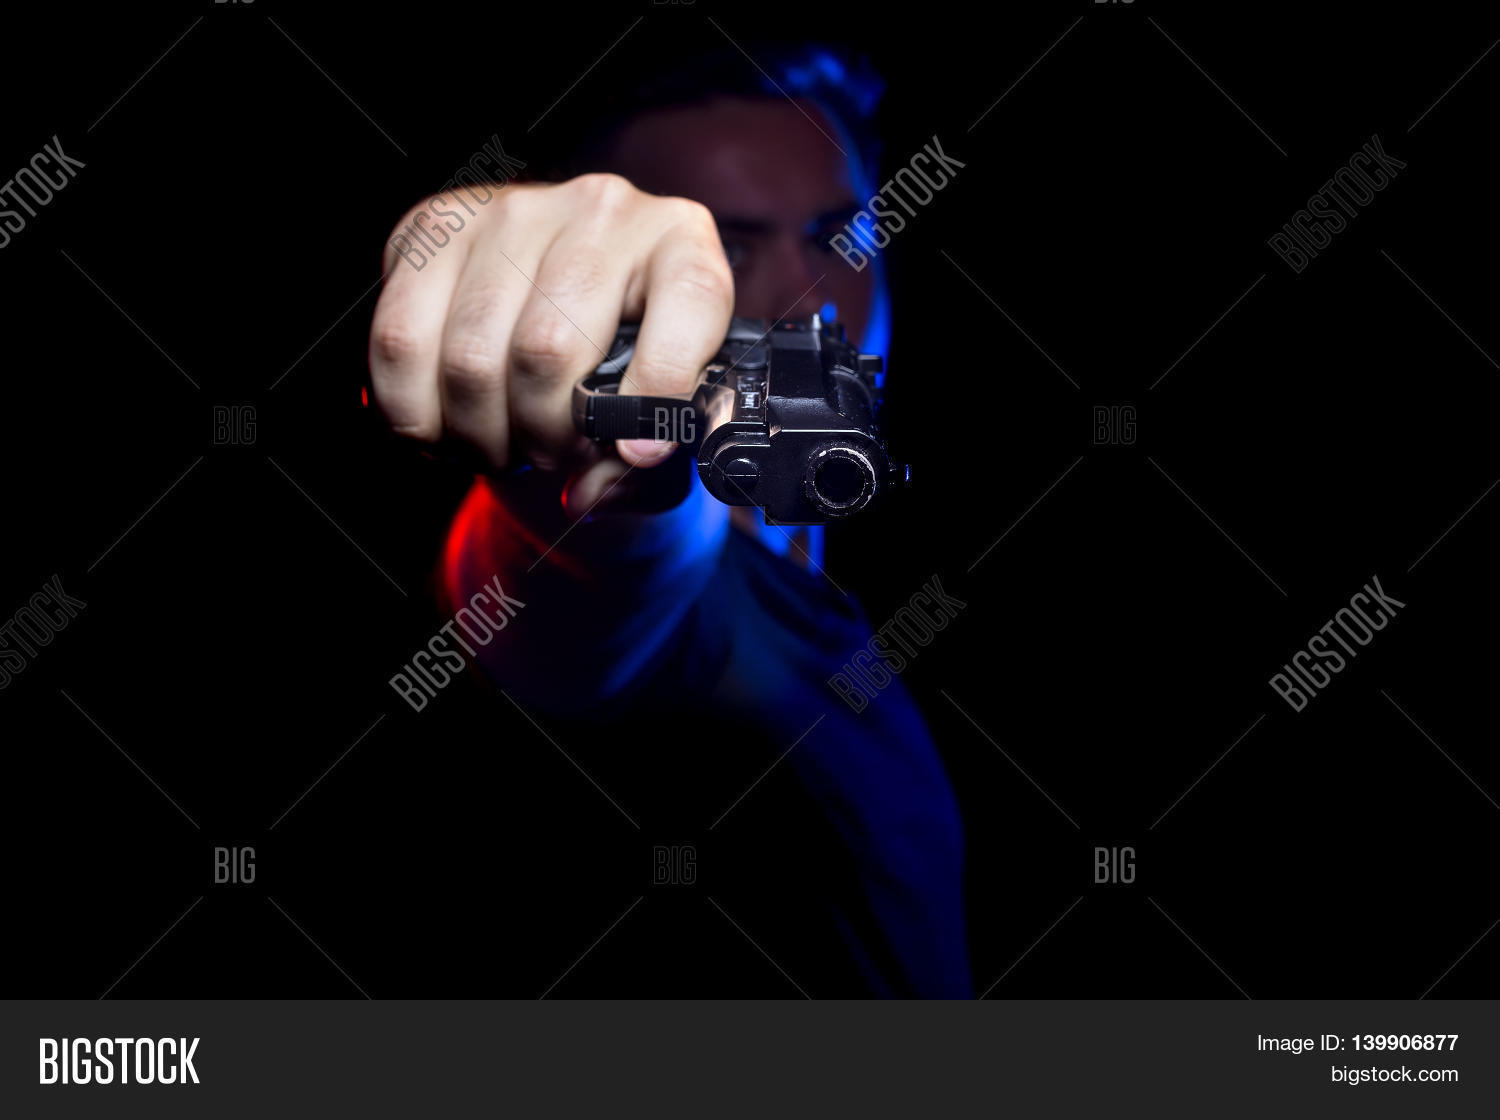 Officer Criminal Image Photo Free Trial Bigstock